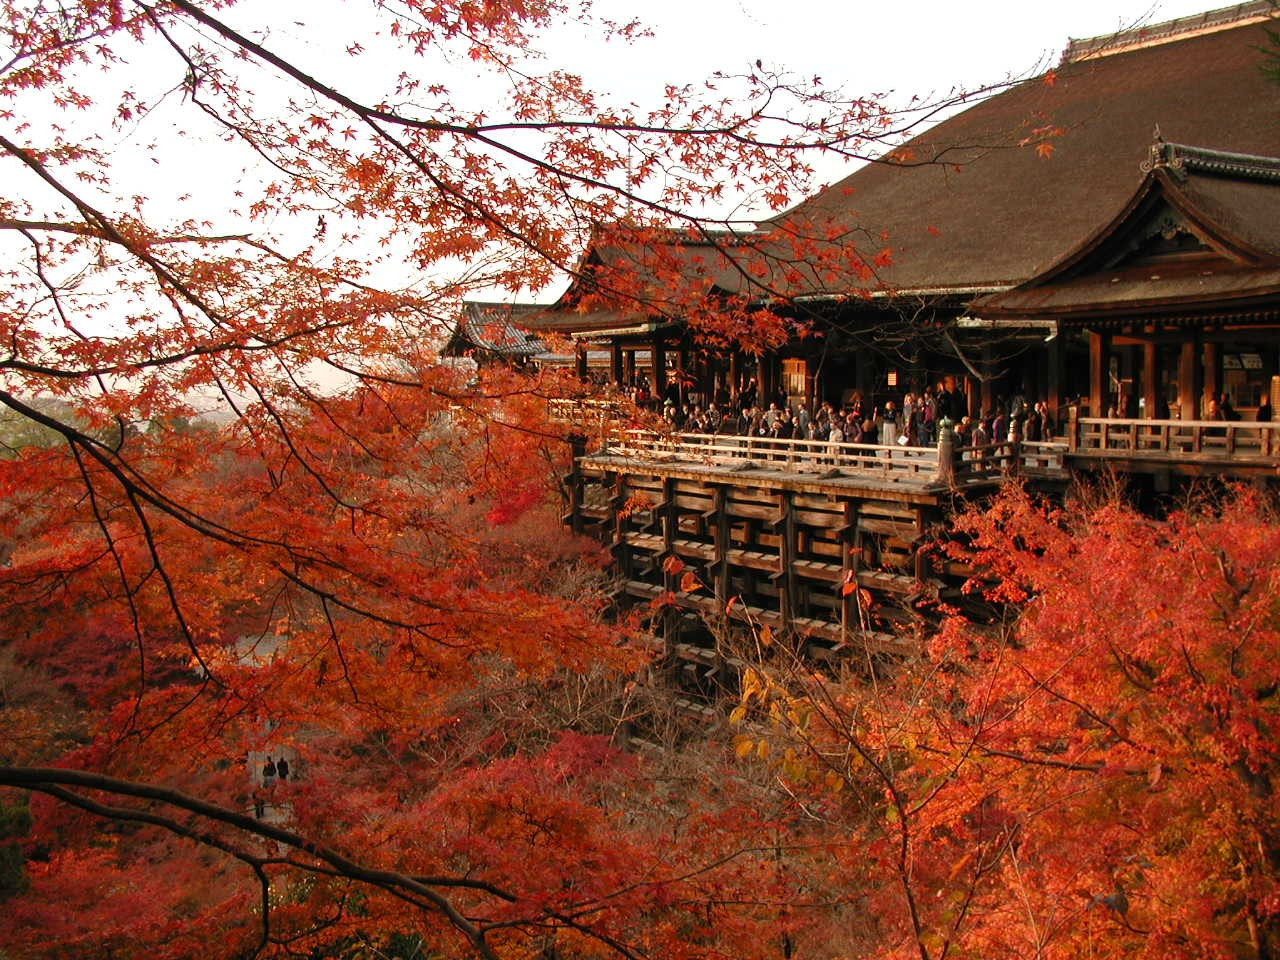 this is Kiyomizu temple